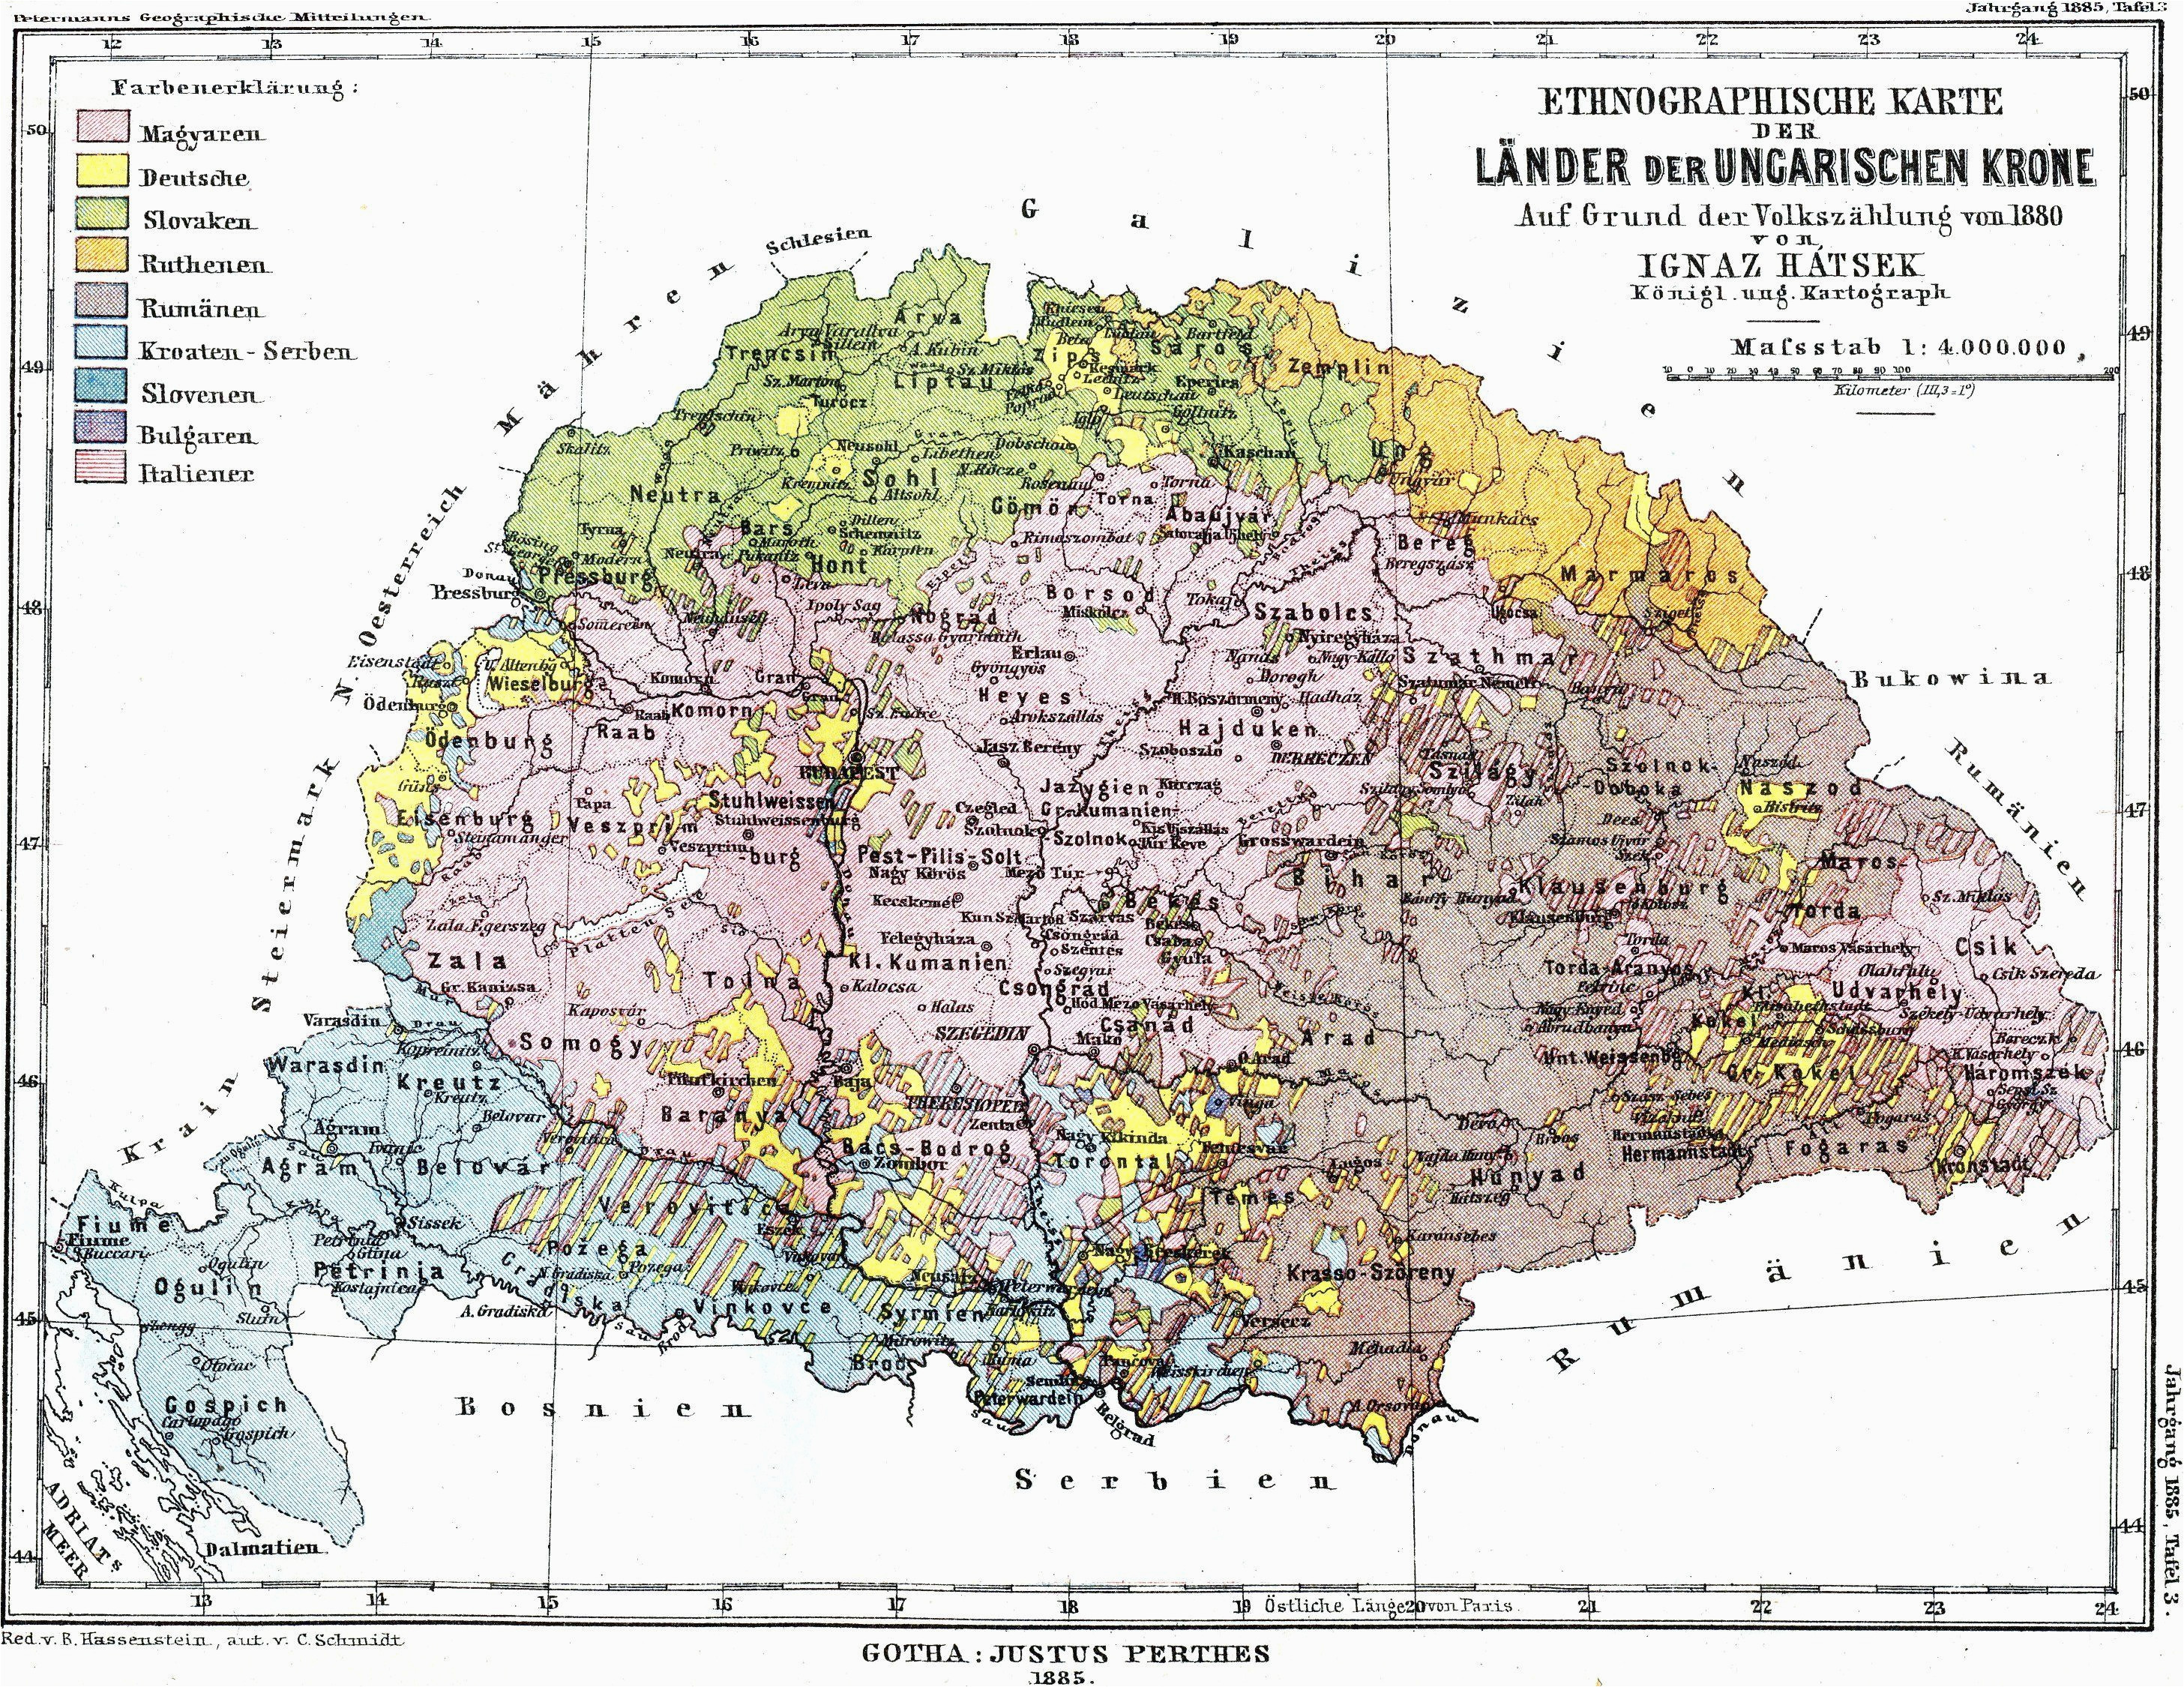 1880 ethnic groups of the hungarian kingdom mapmania